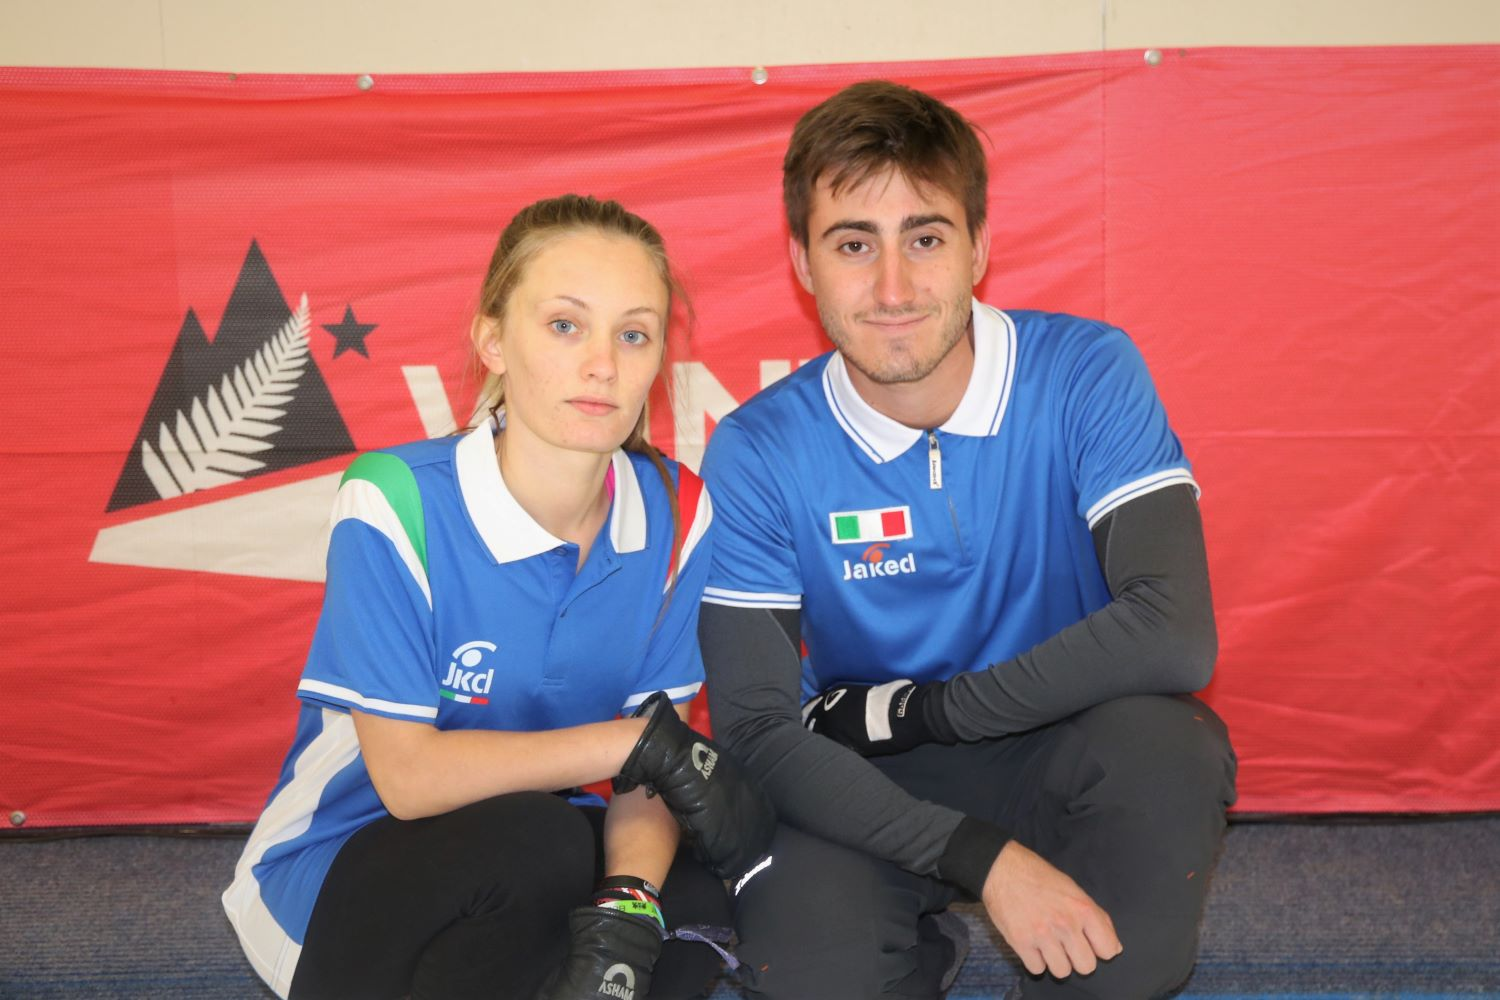 Team Italy - Annamaria Maurino and Fabrizio Gallo